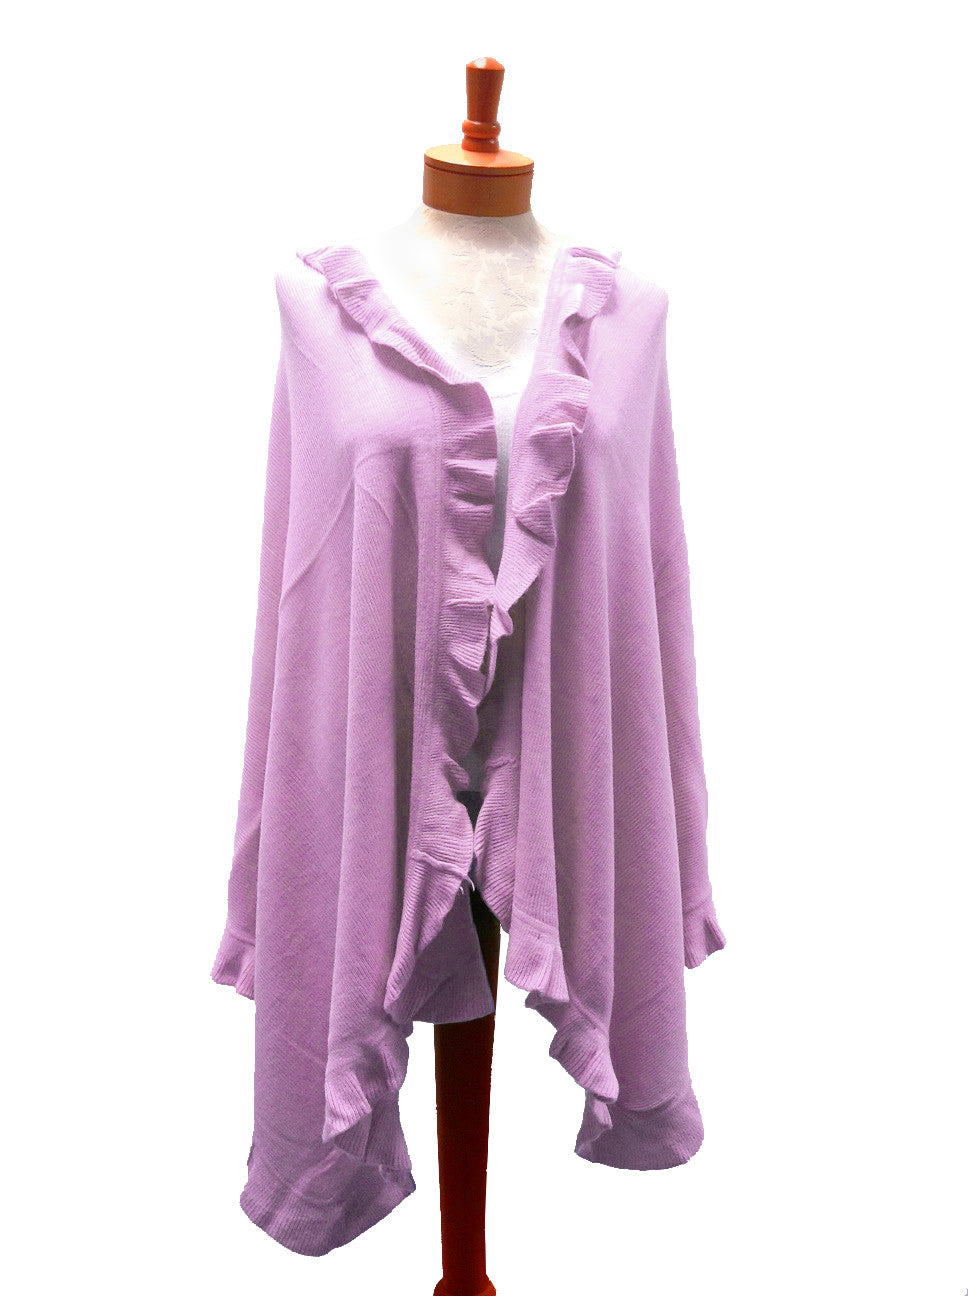 Mr. Song Millinery Shawl Wrap Ruffled Edging - 2 Colors